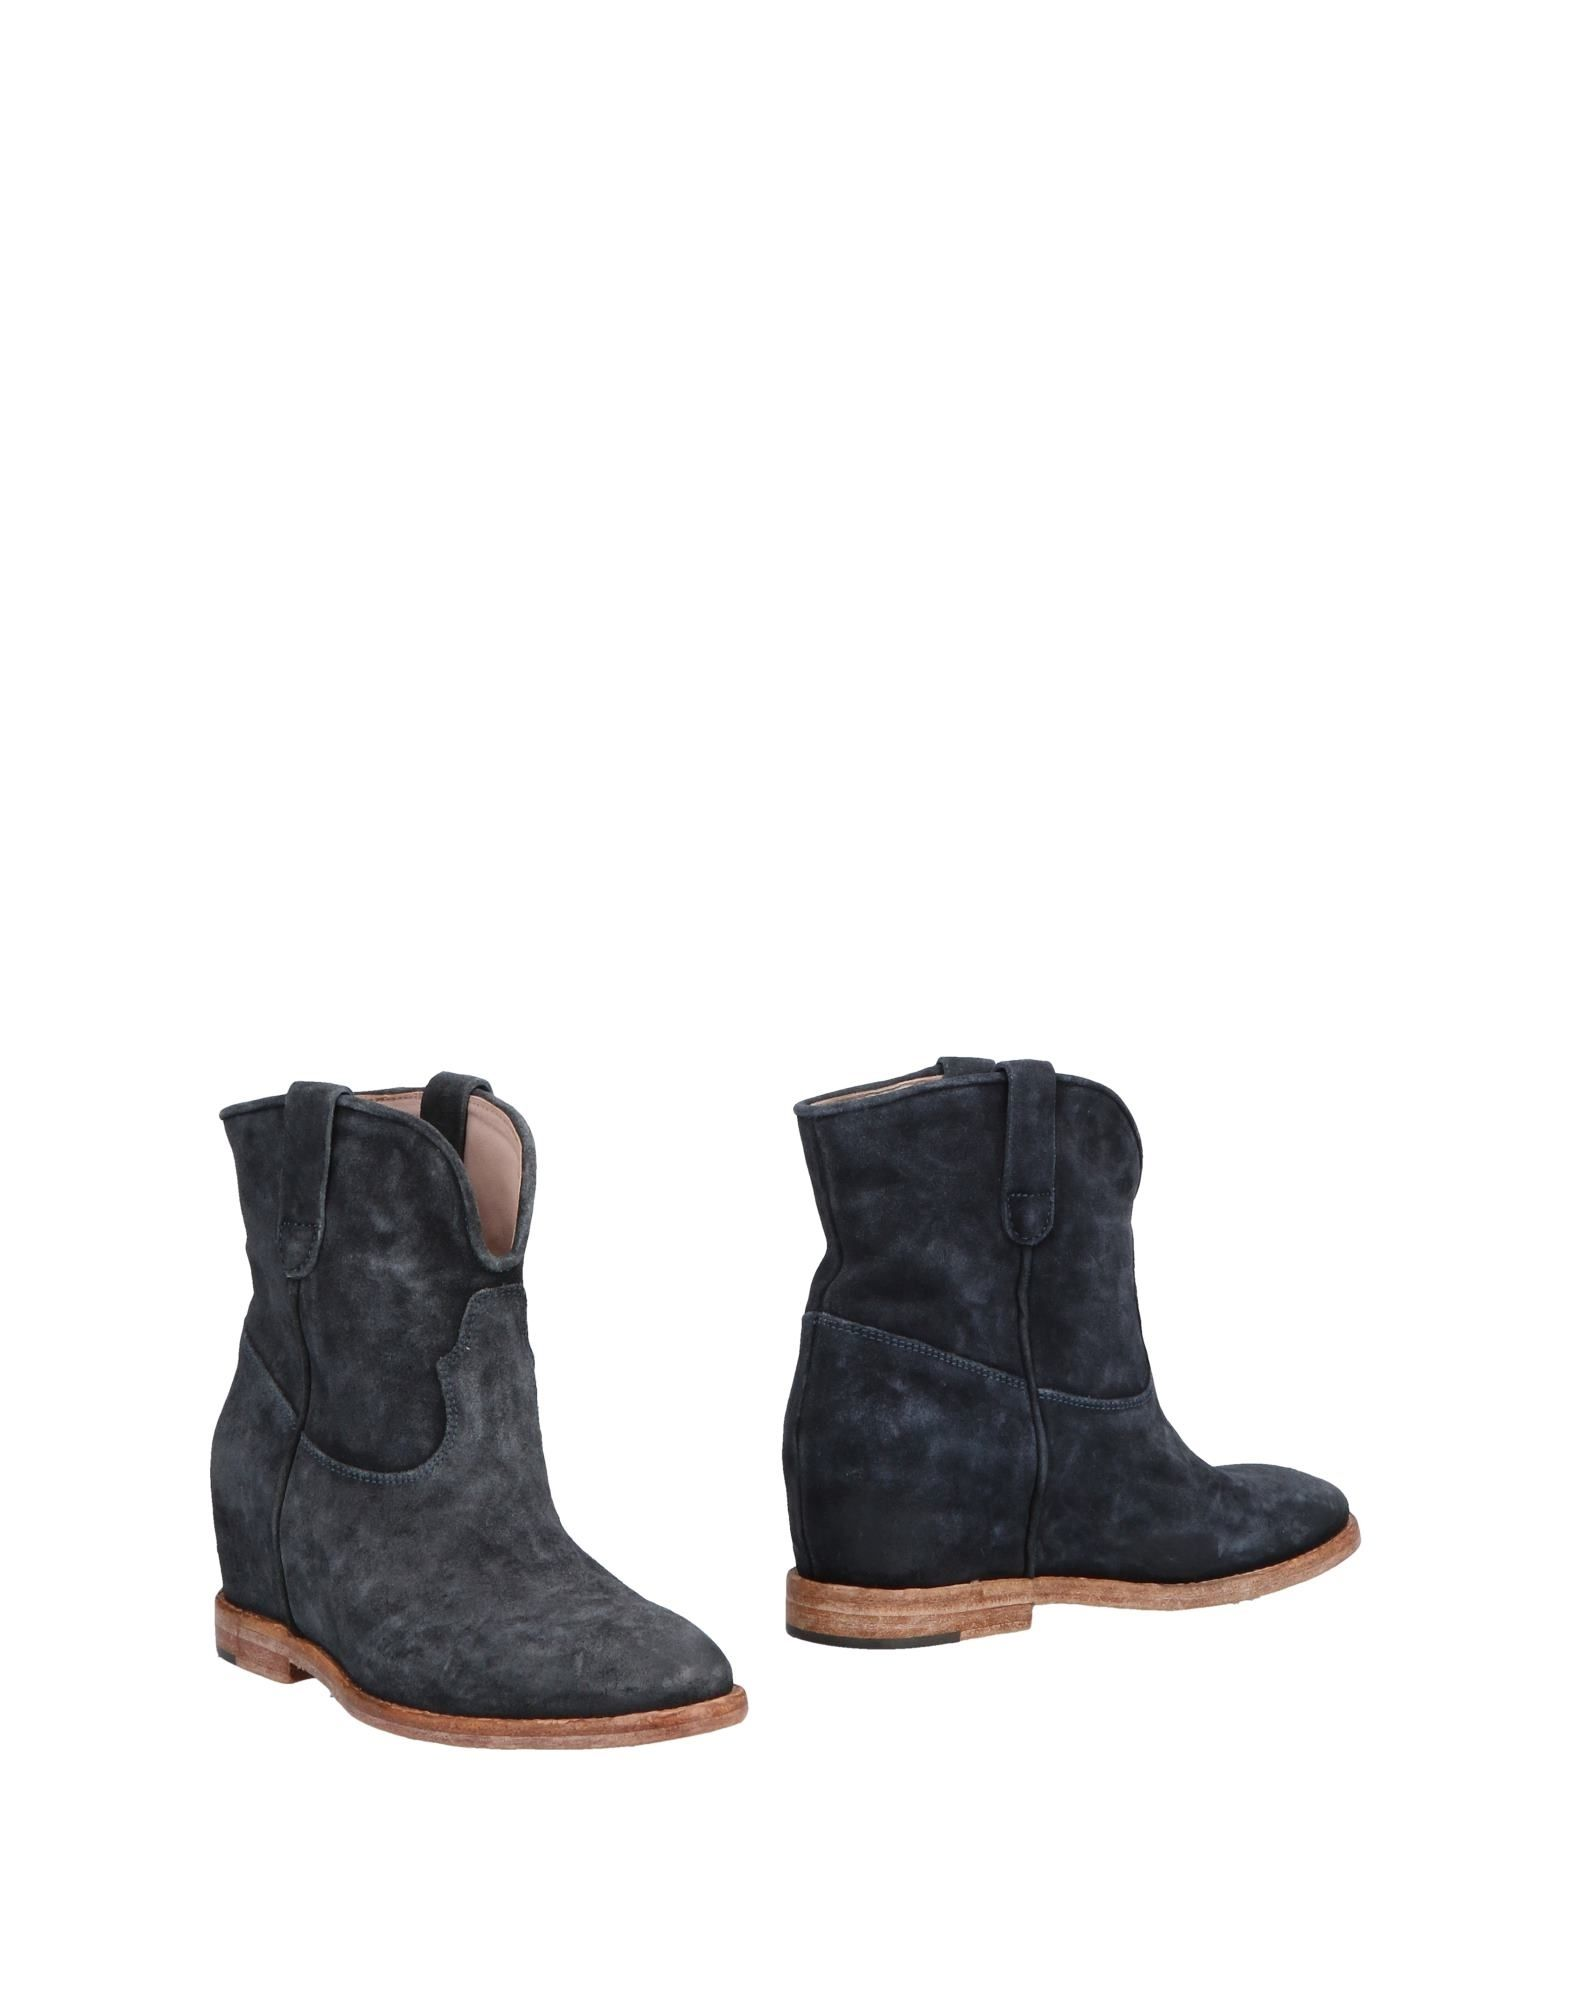 Corvari Ankle Ankle Boot - Women Corvari Ankle Ankle Boots online on  Australia - 11501526TX 9a672f